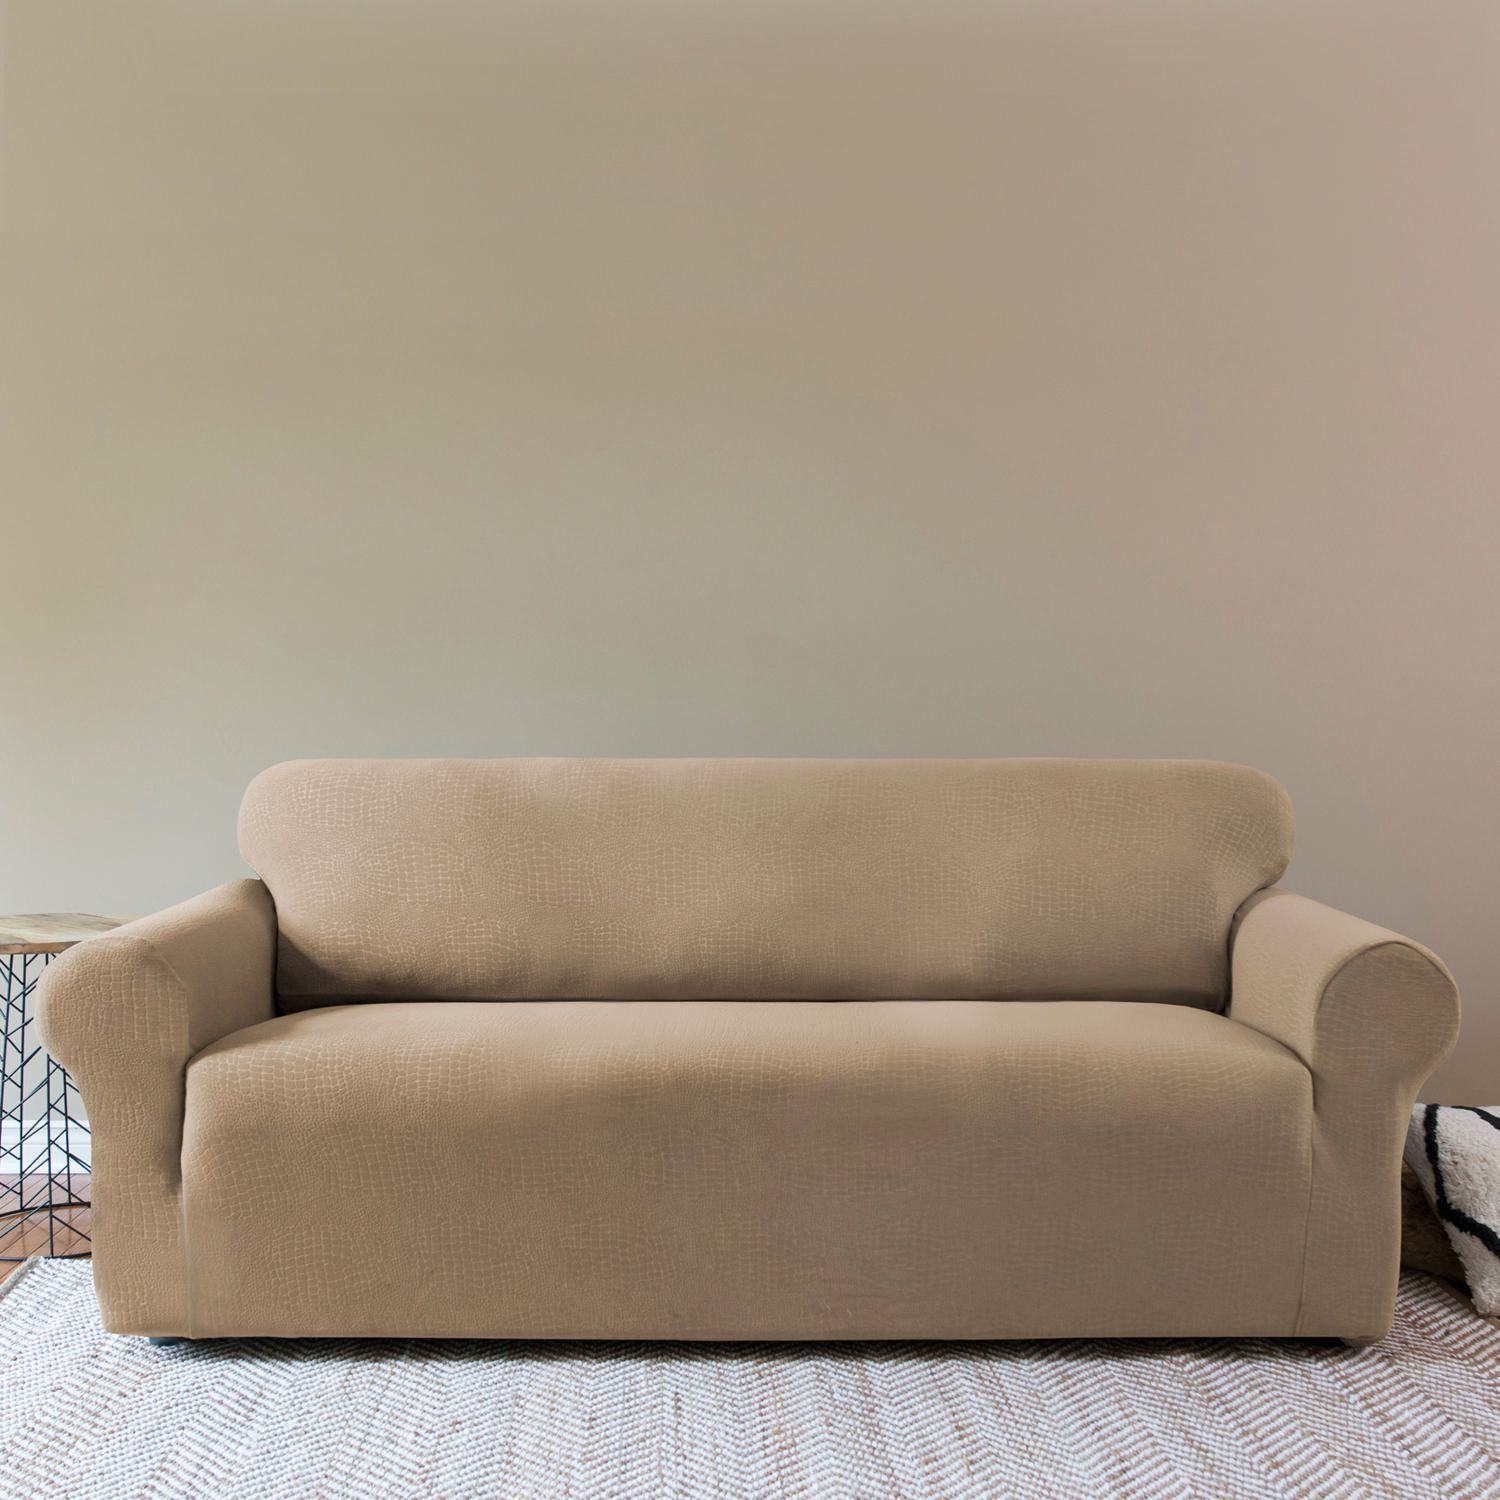 Sofa Covers & Slip Covering for Home Décor at Walmart